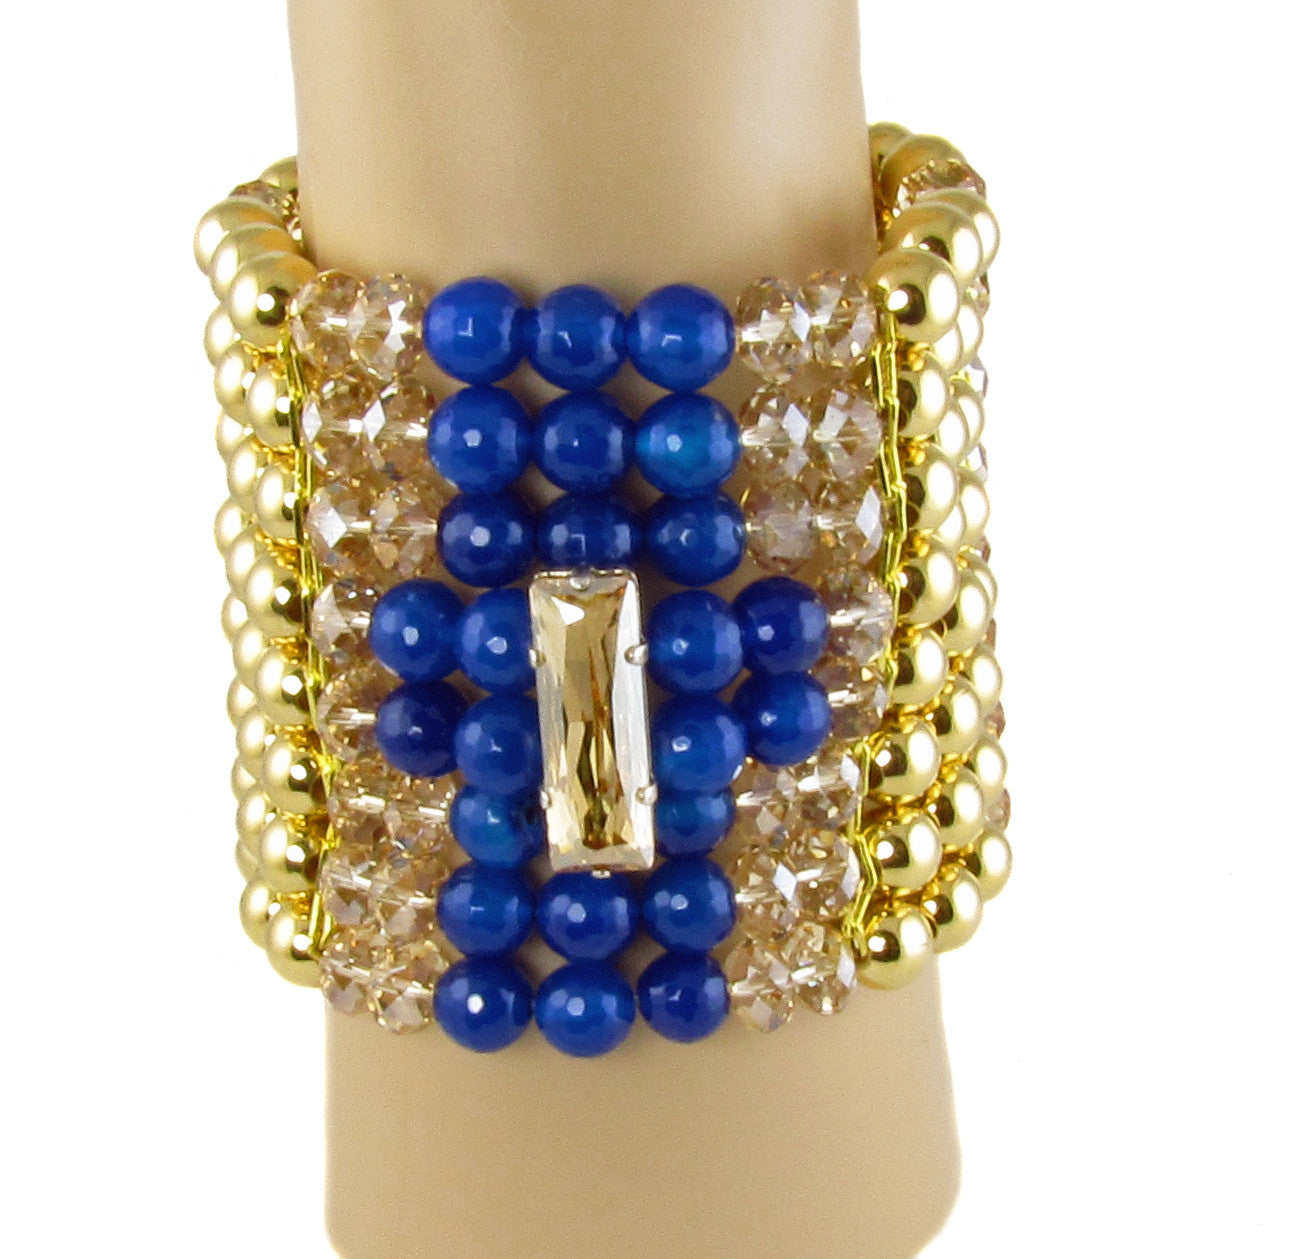 LENA- Electric blue chunky bracelet with swarovski crystals - MARIA MOSS